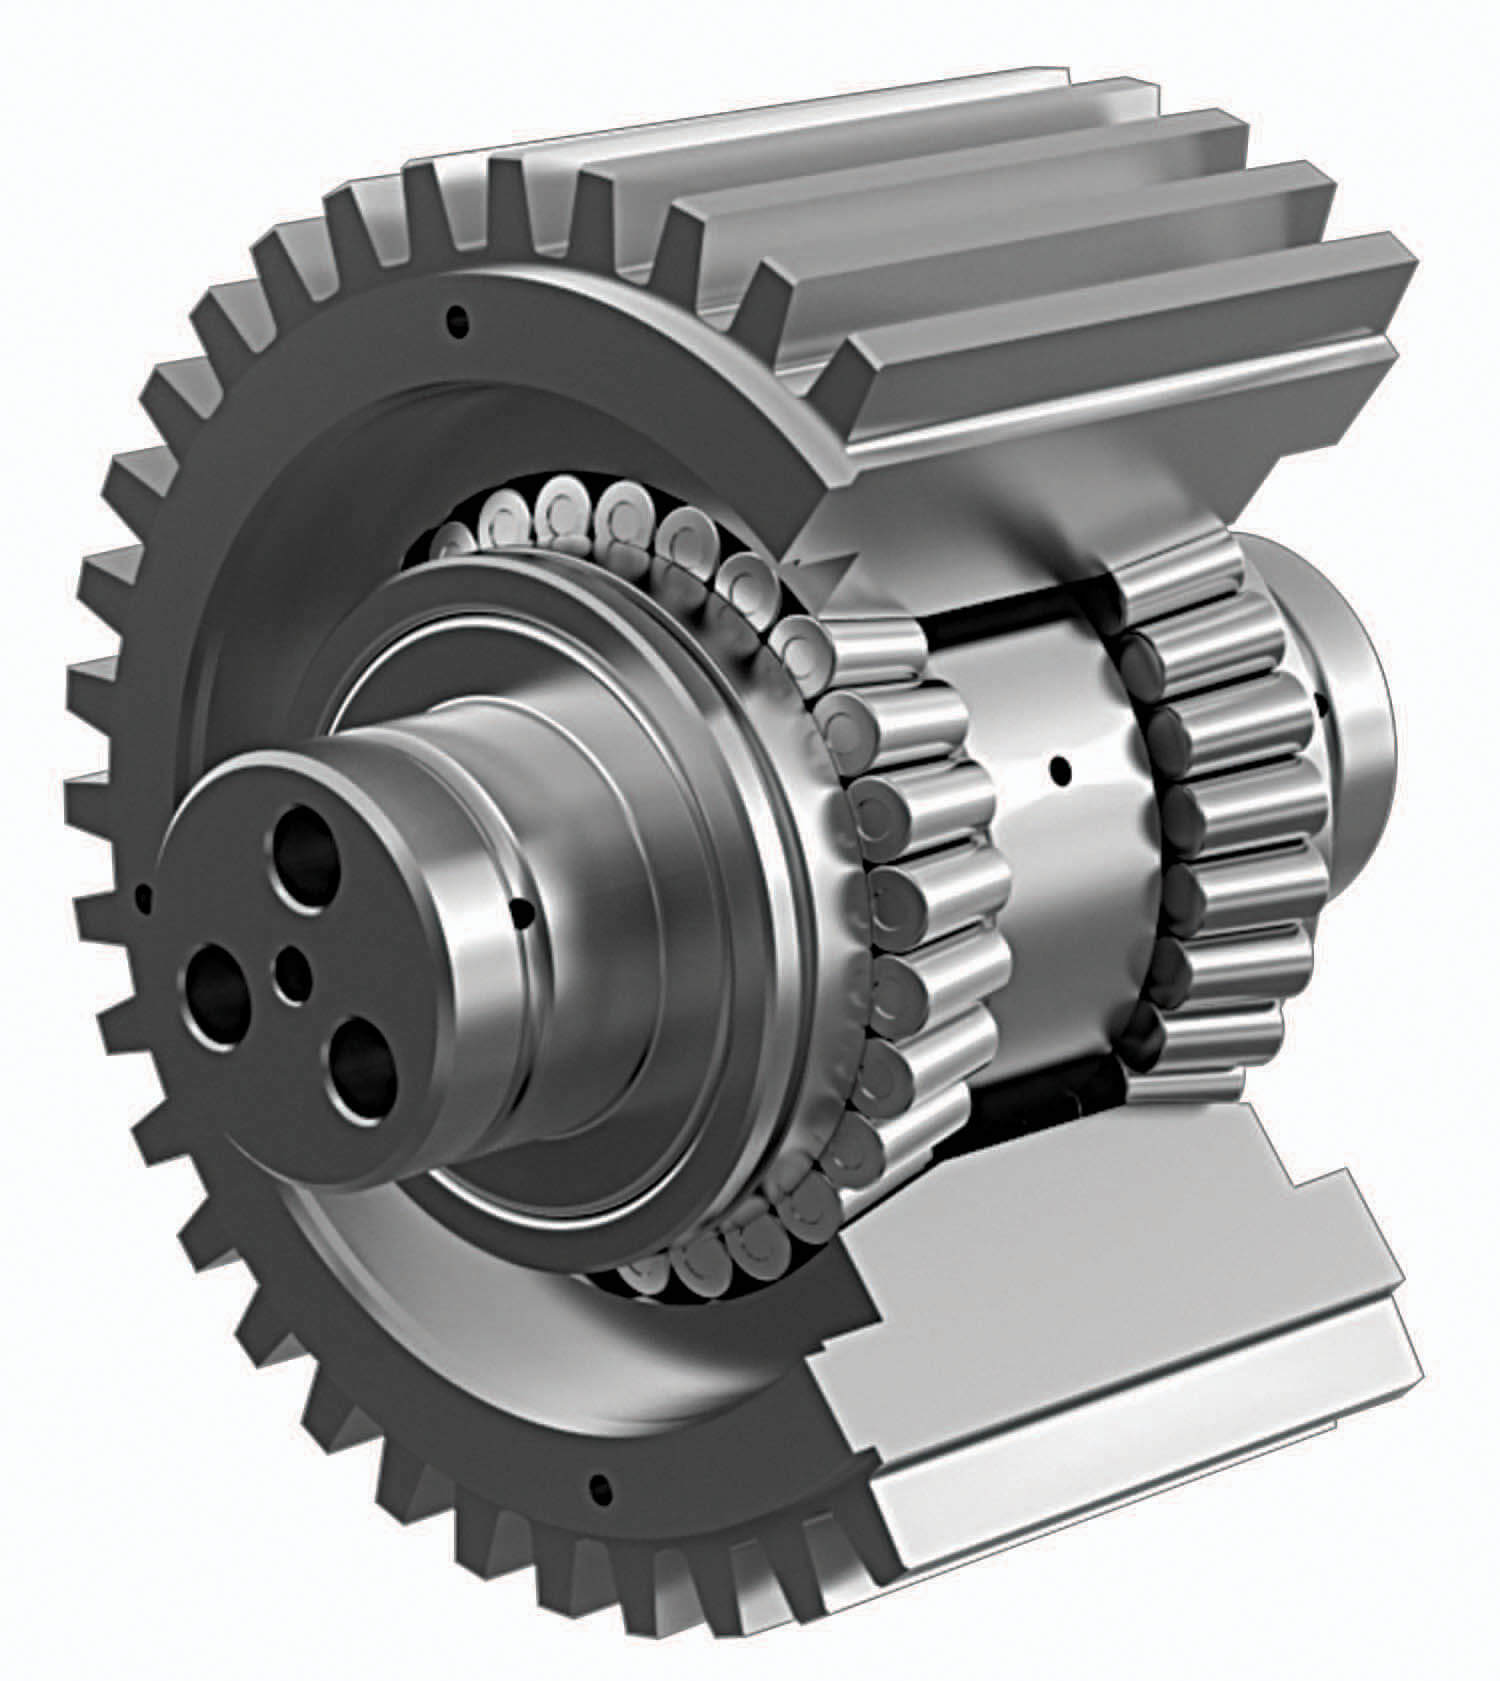 Bearing Machine Why Integrated Bearing Designs Reduce Wind Turbine Gearbox Failures